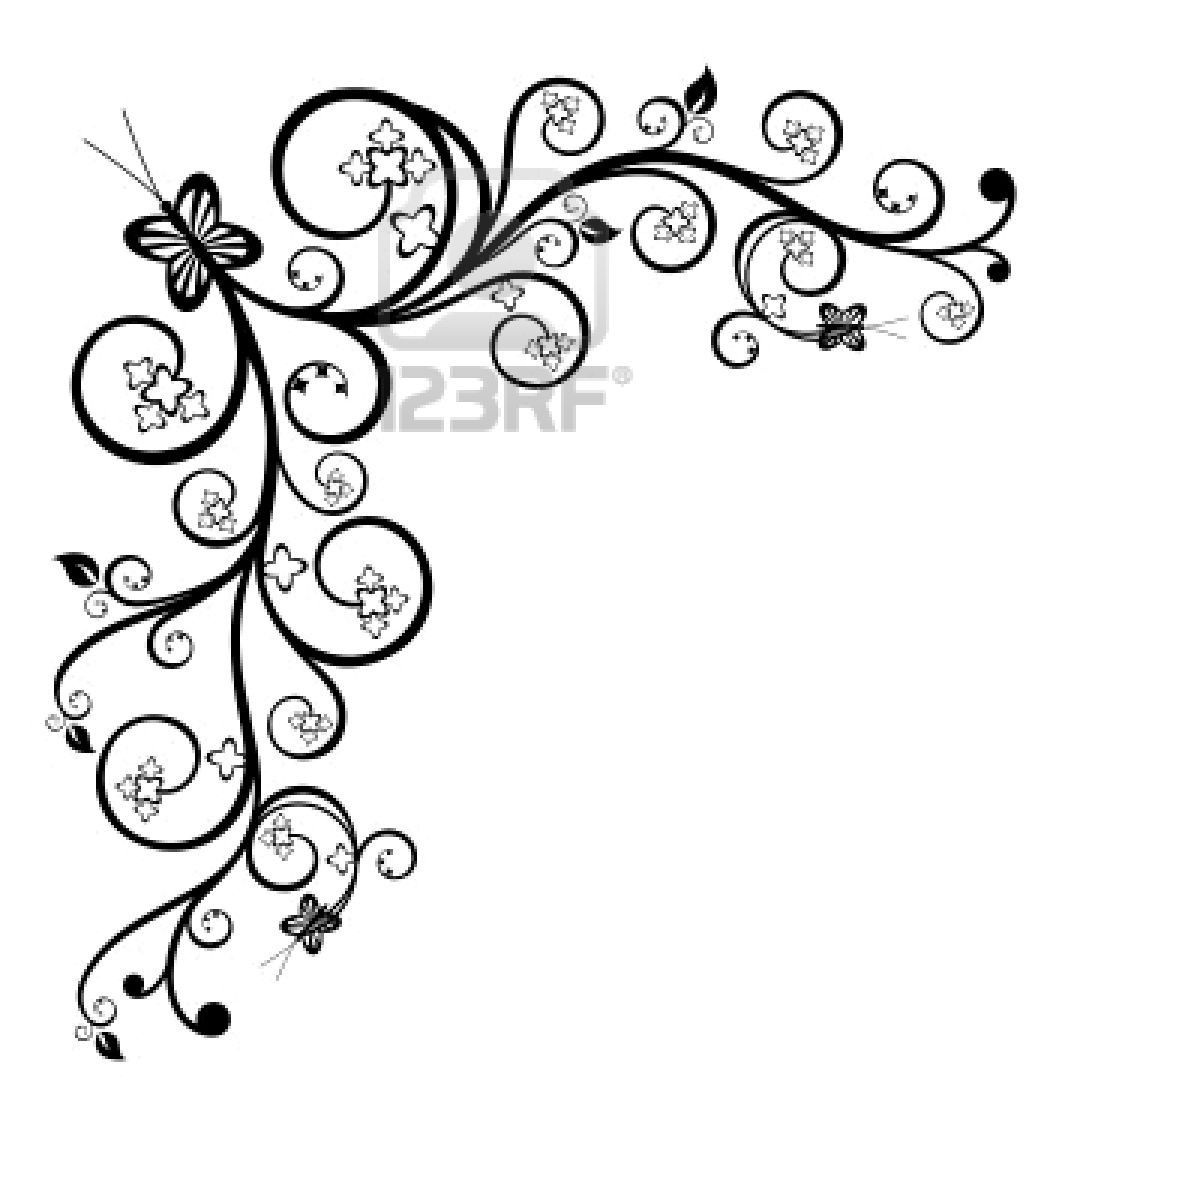 1200x1200 Pictures Simple Flower Border Designs To Draw,